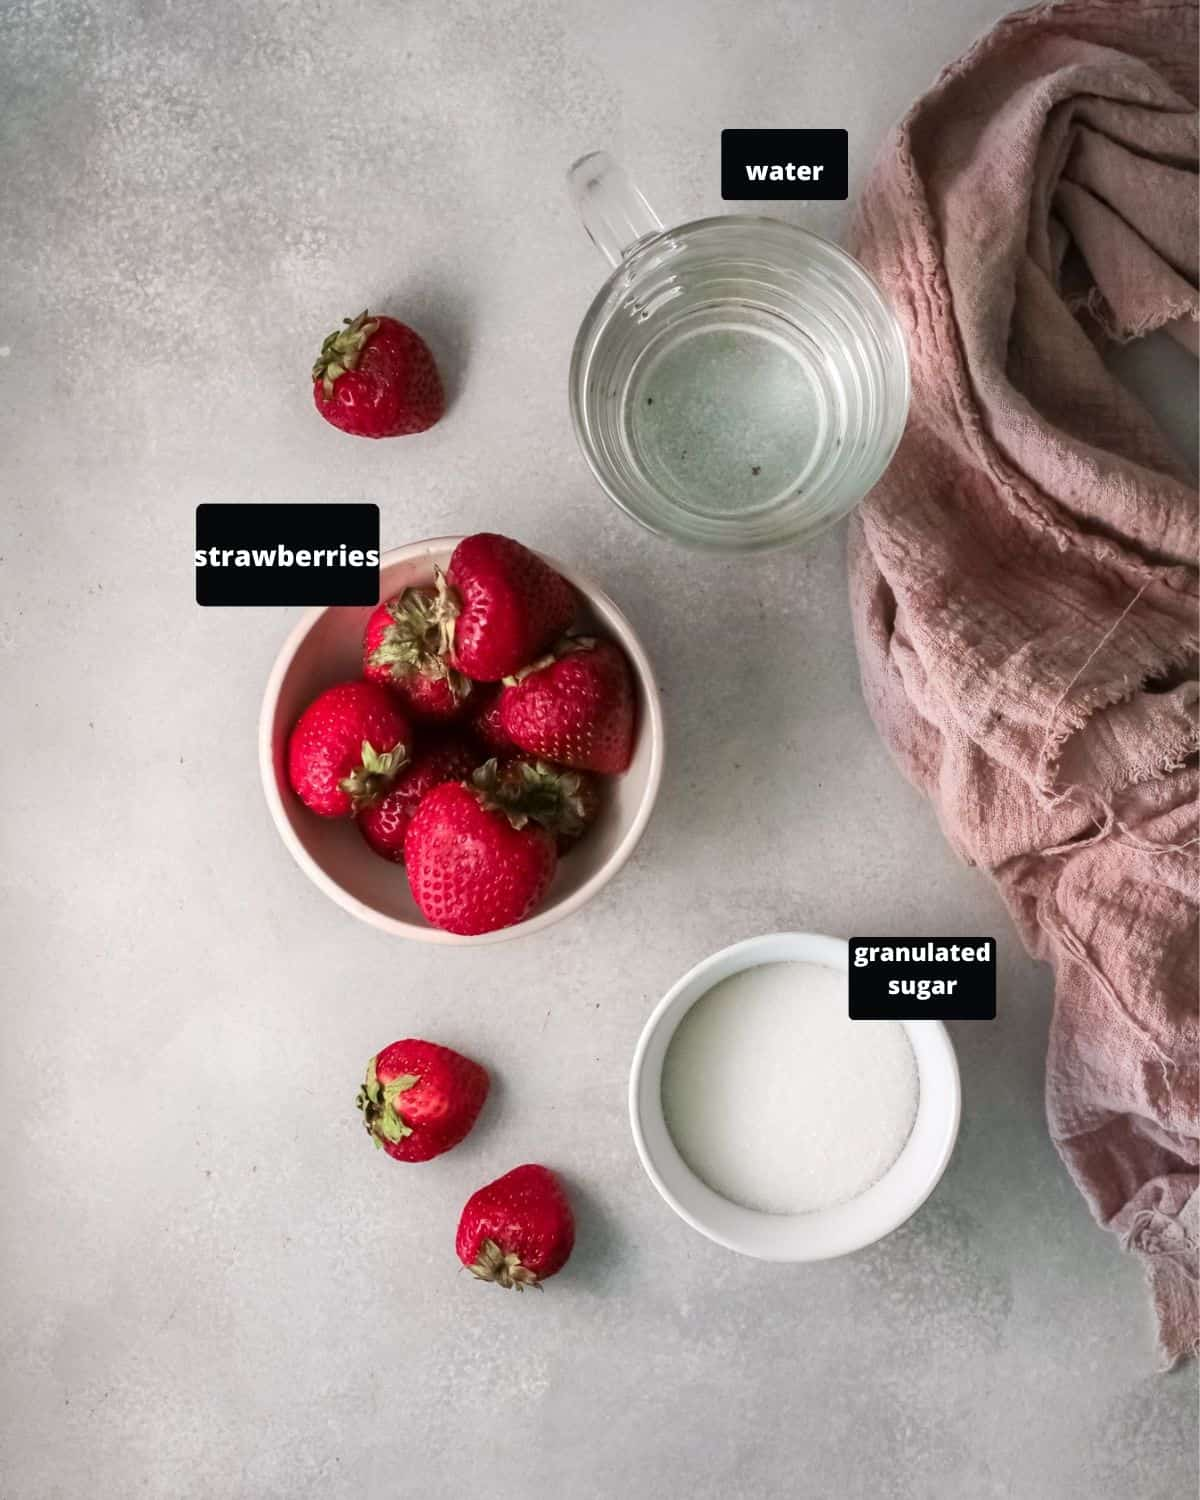 strawberries, sugar, and water- the ingredients to make sugar syrup.